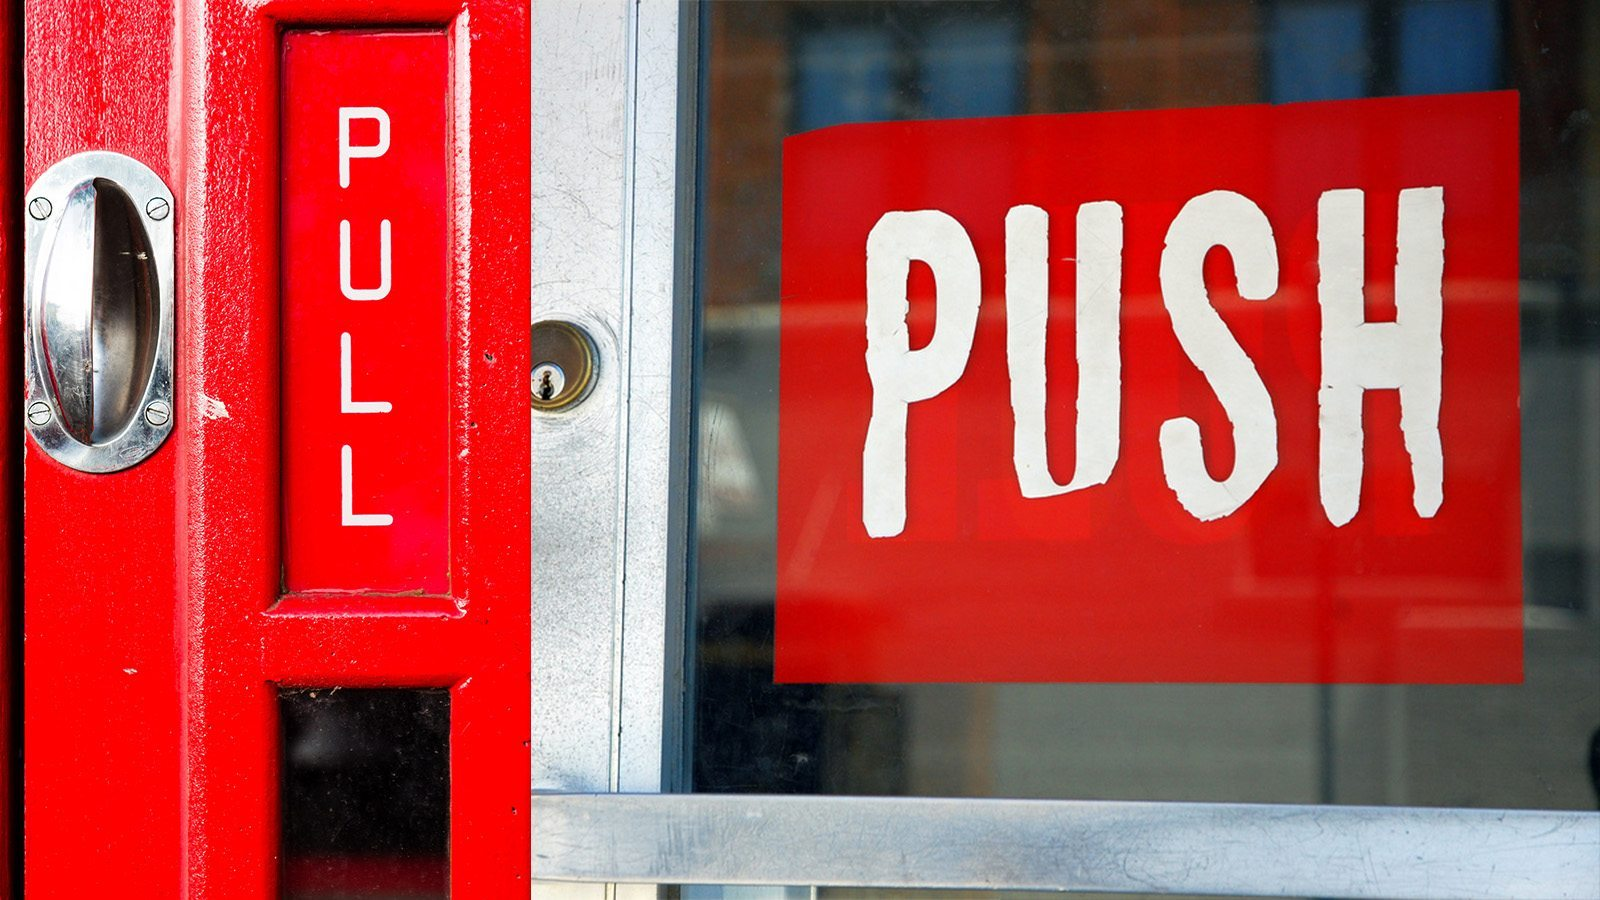 Image: Push and Pull signs on confusing doors